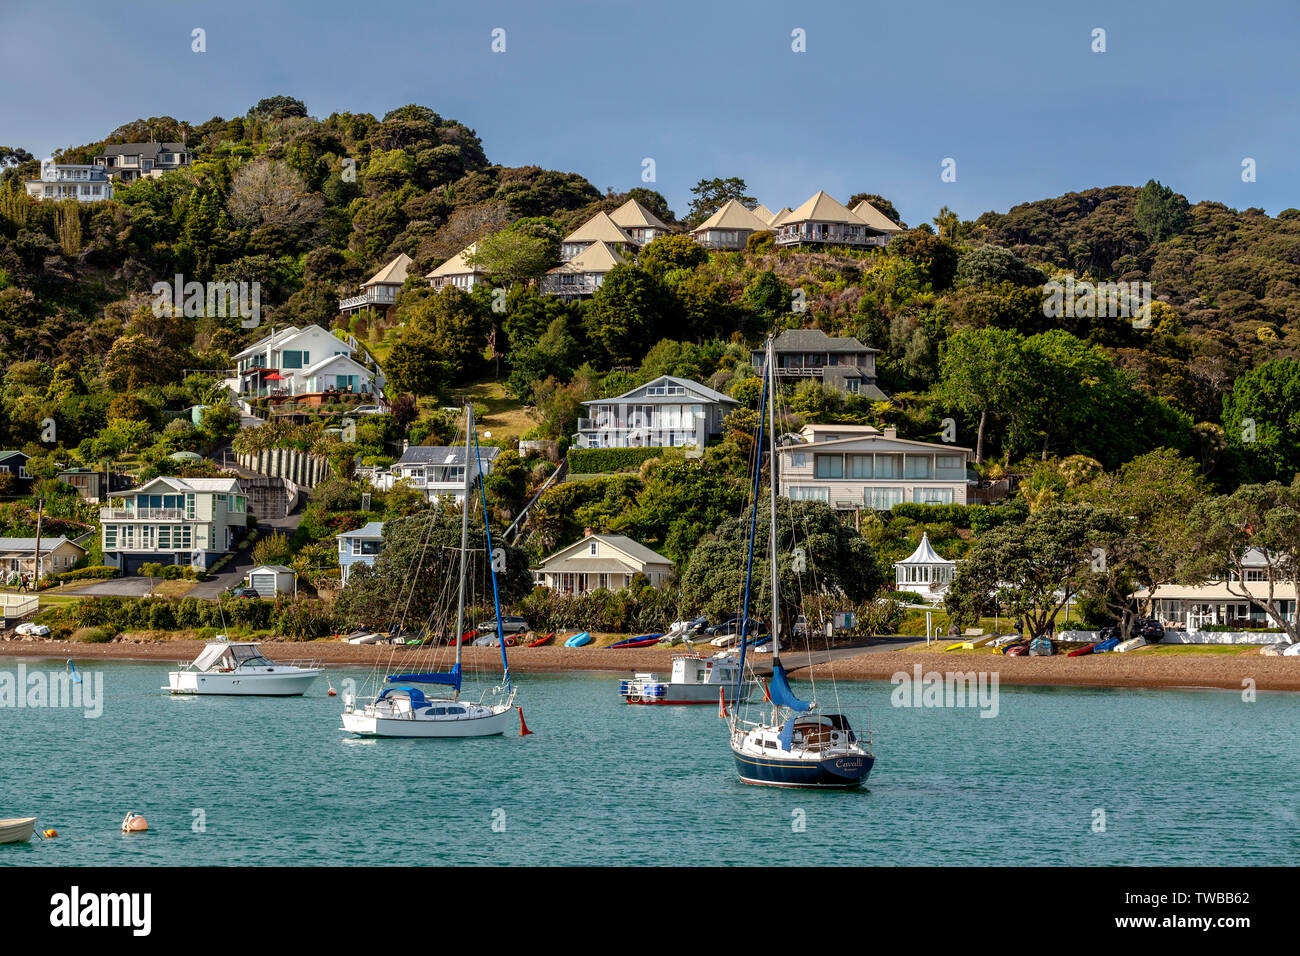 The Town Of Russell, The Bay Of Islands, North Island, New Zealand Stock Photo